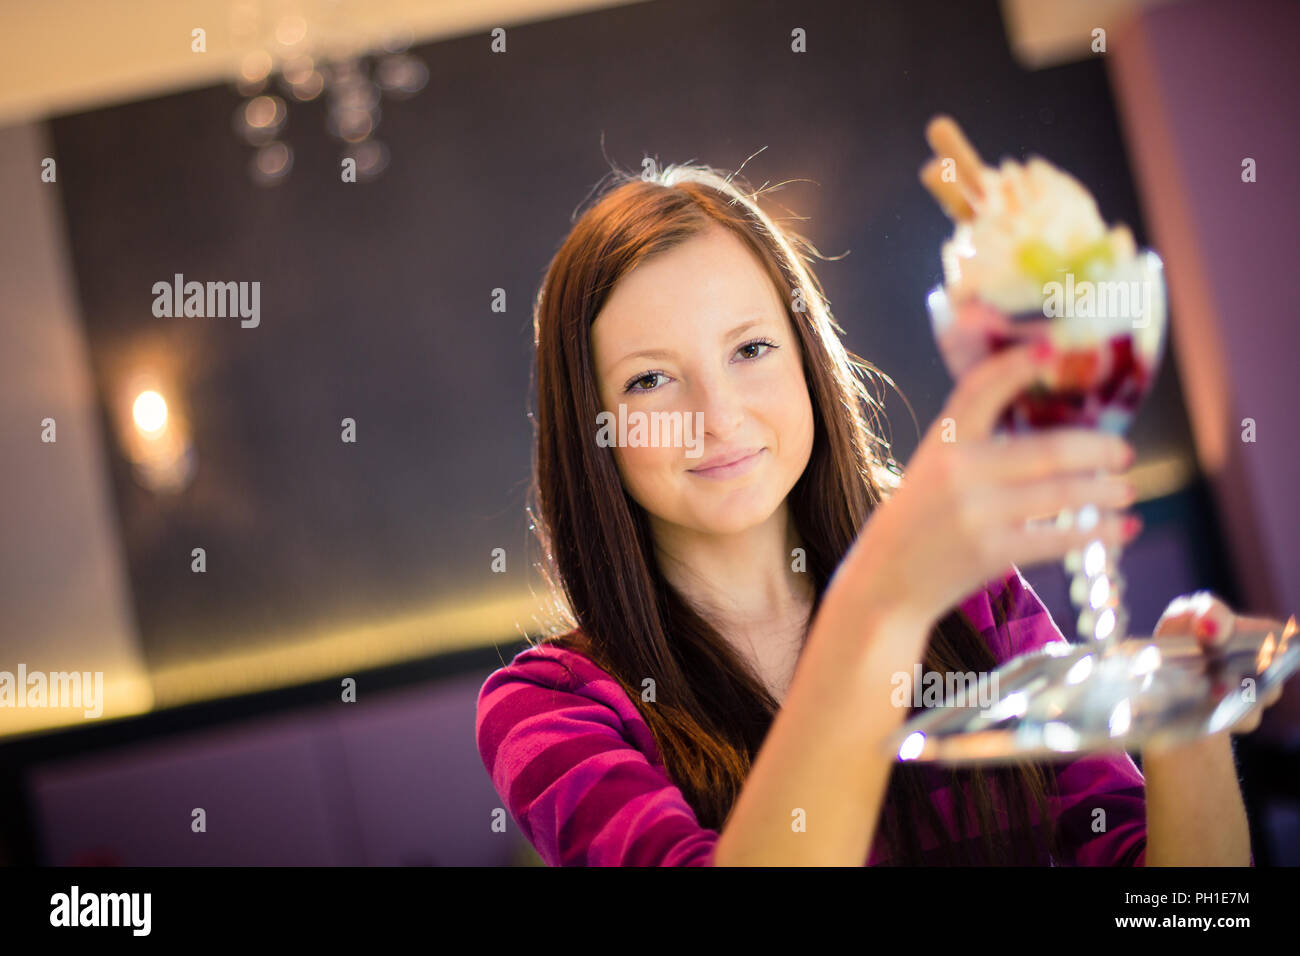 Cute young woman in an ice cream parlor, taking her ice-cream from the counter Stock Photo